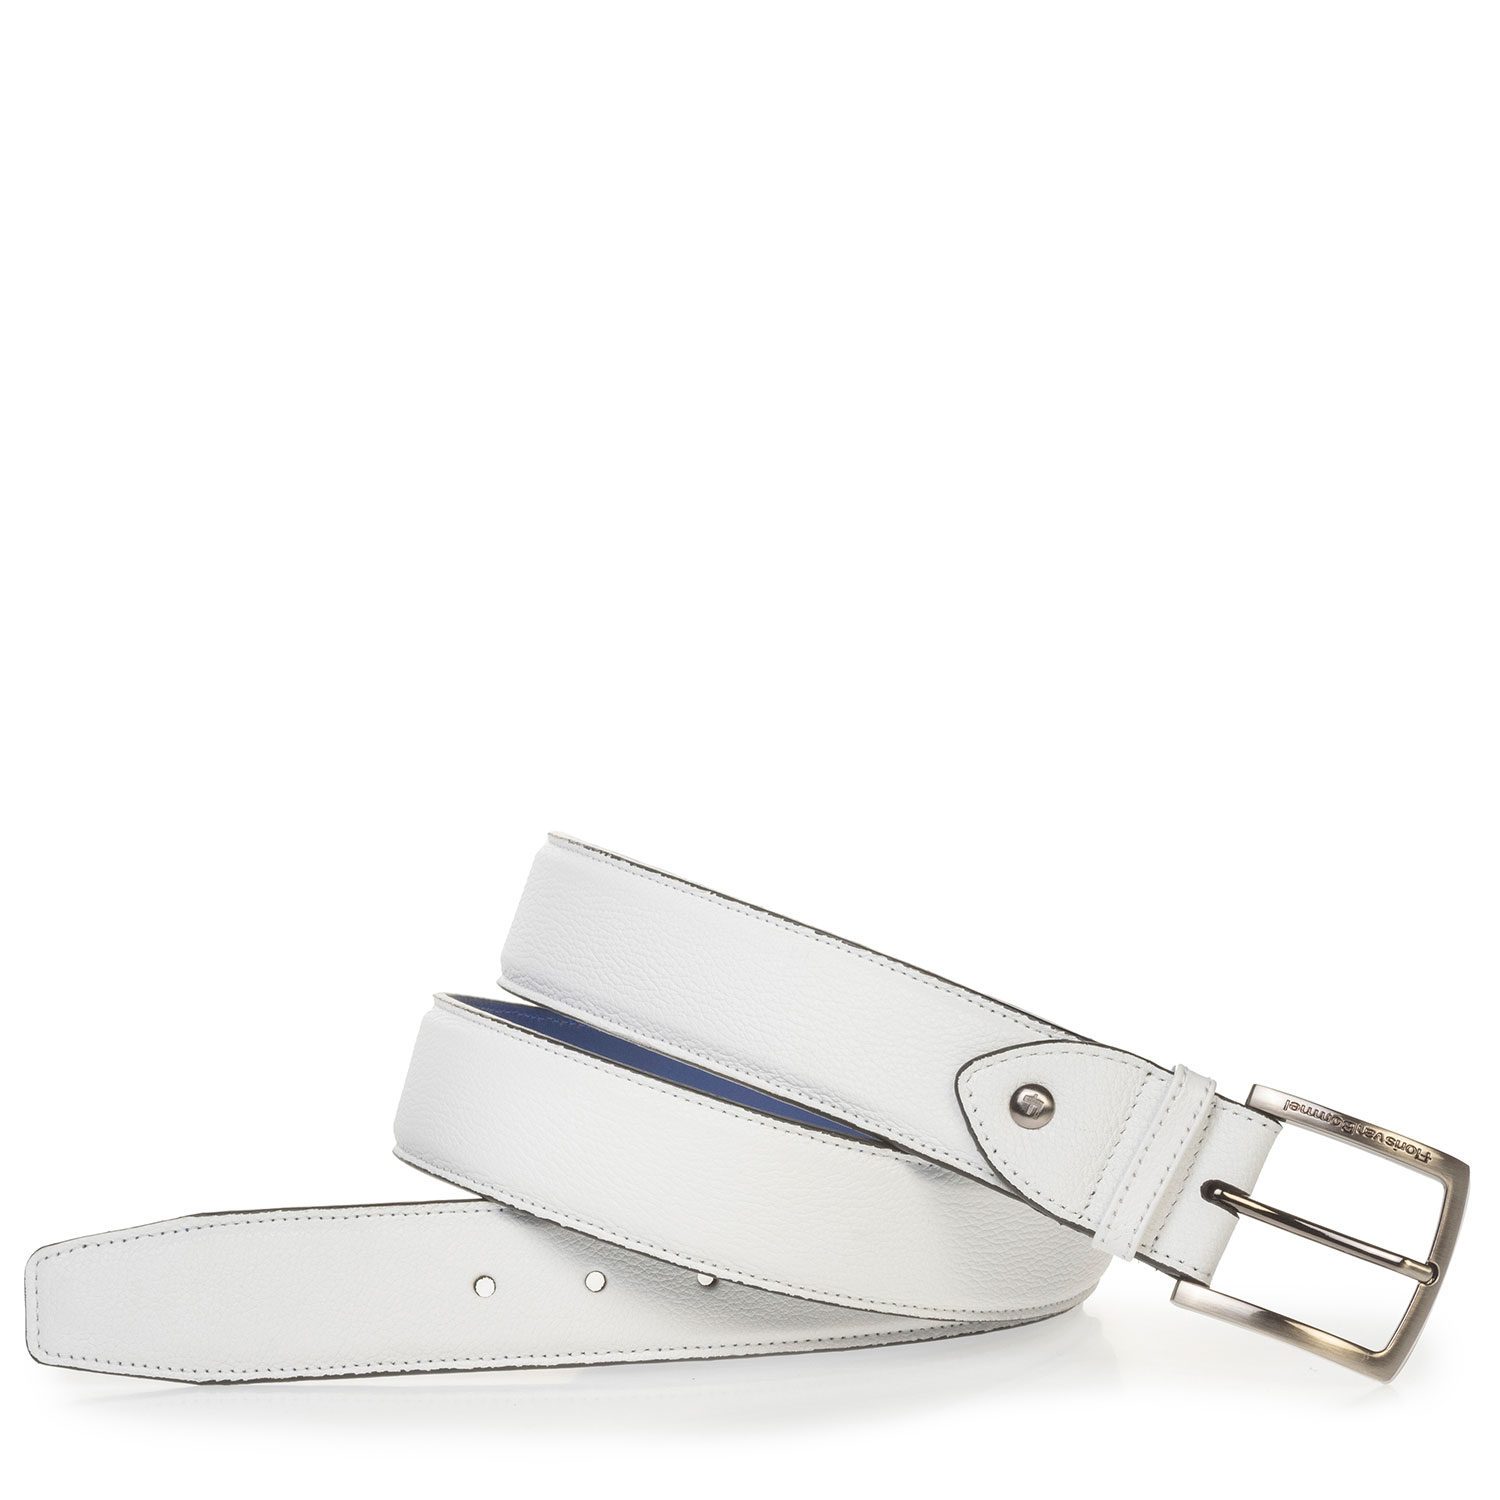 75189/65 - Leather belt with structured pattern white